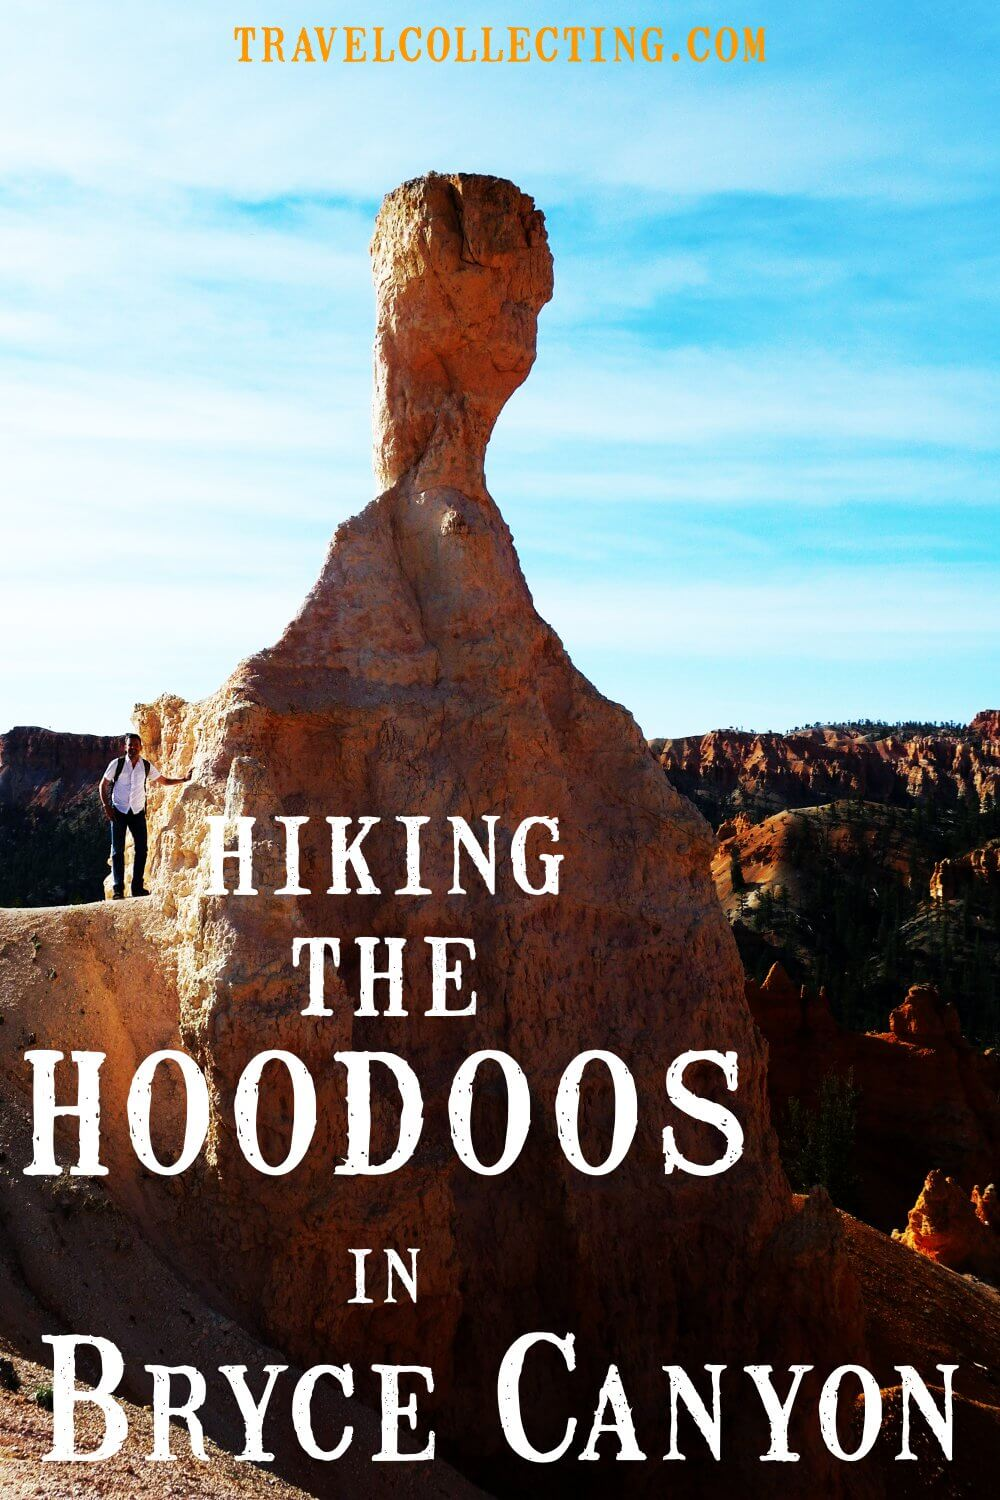 Hiking the hoodoos in bryce canyon